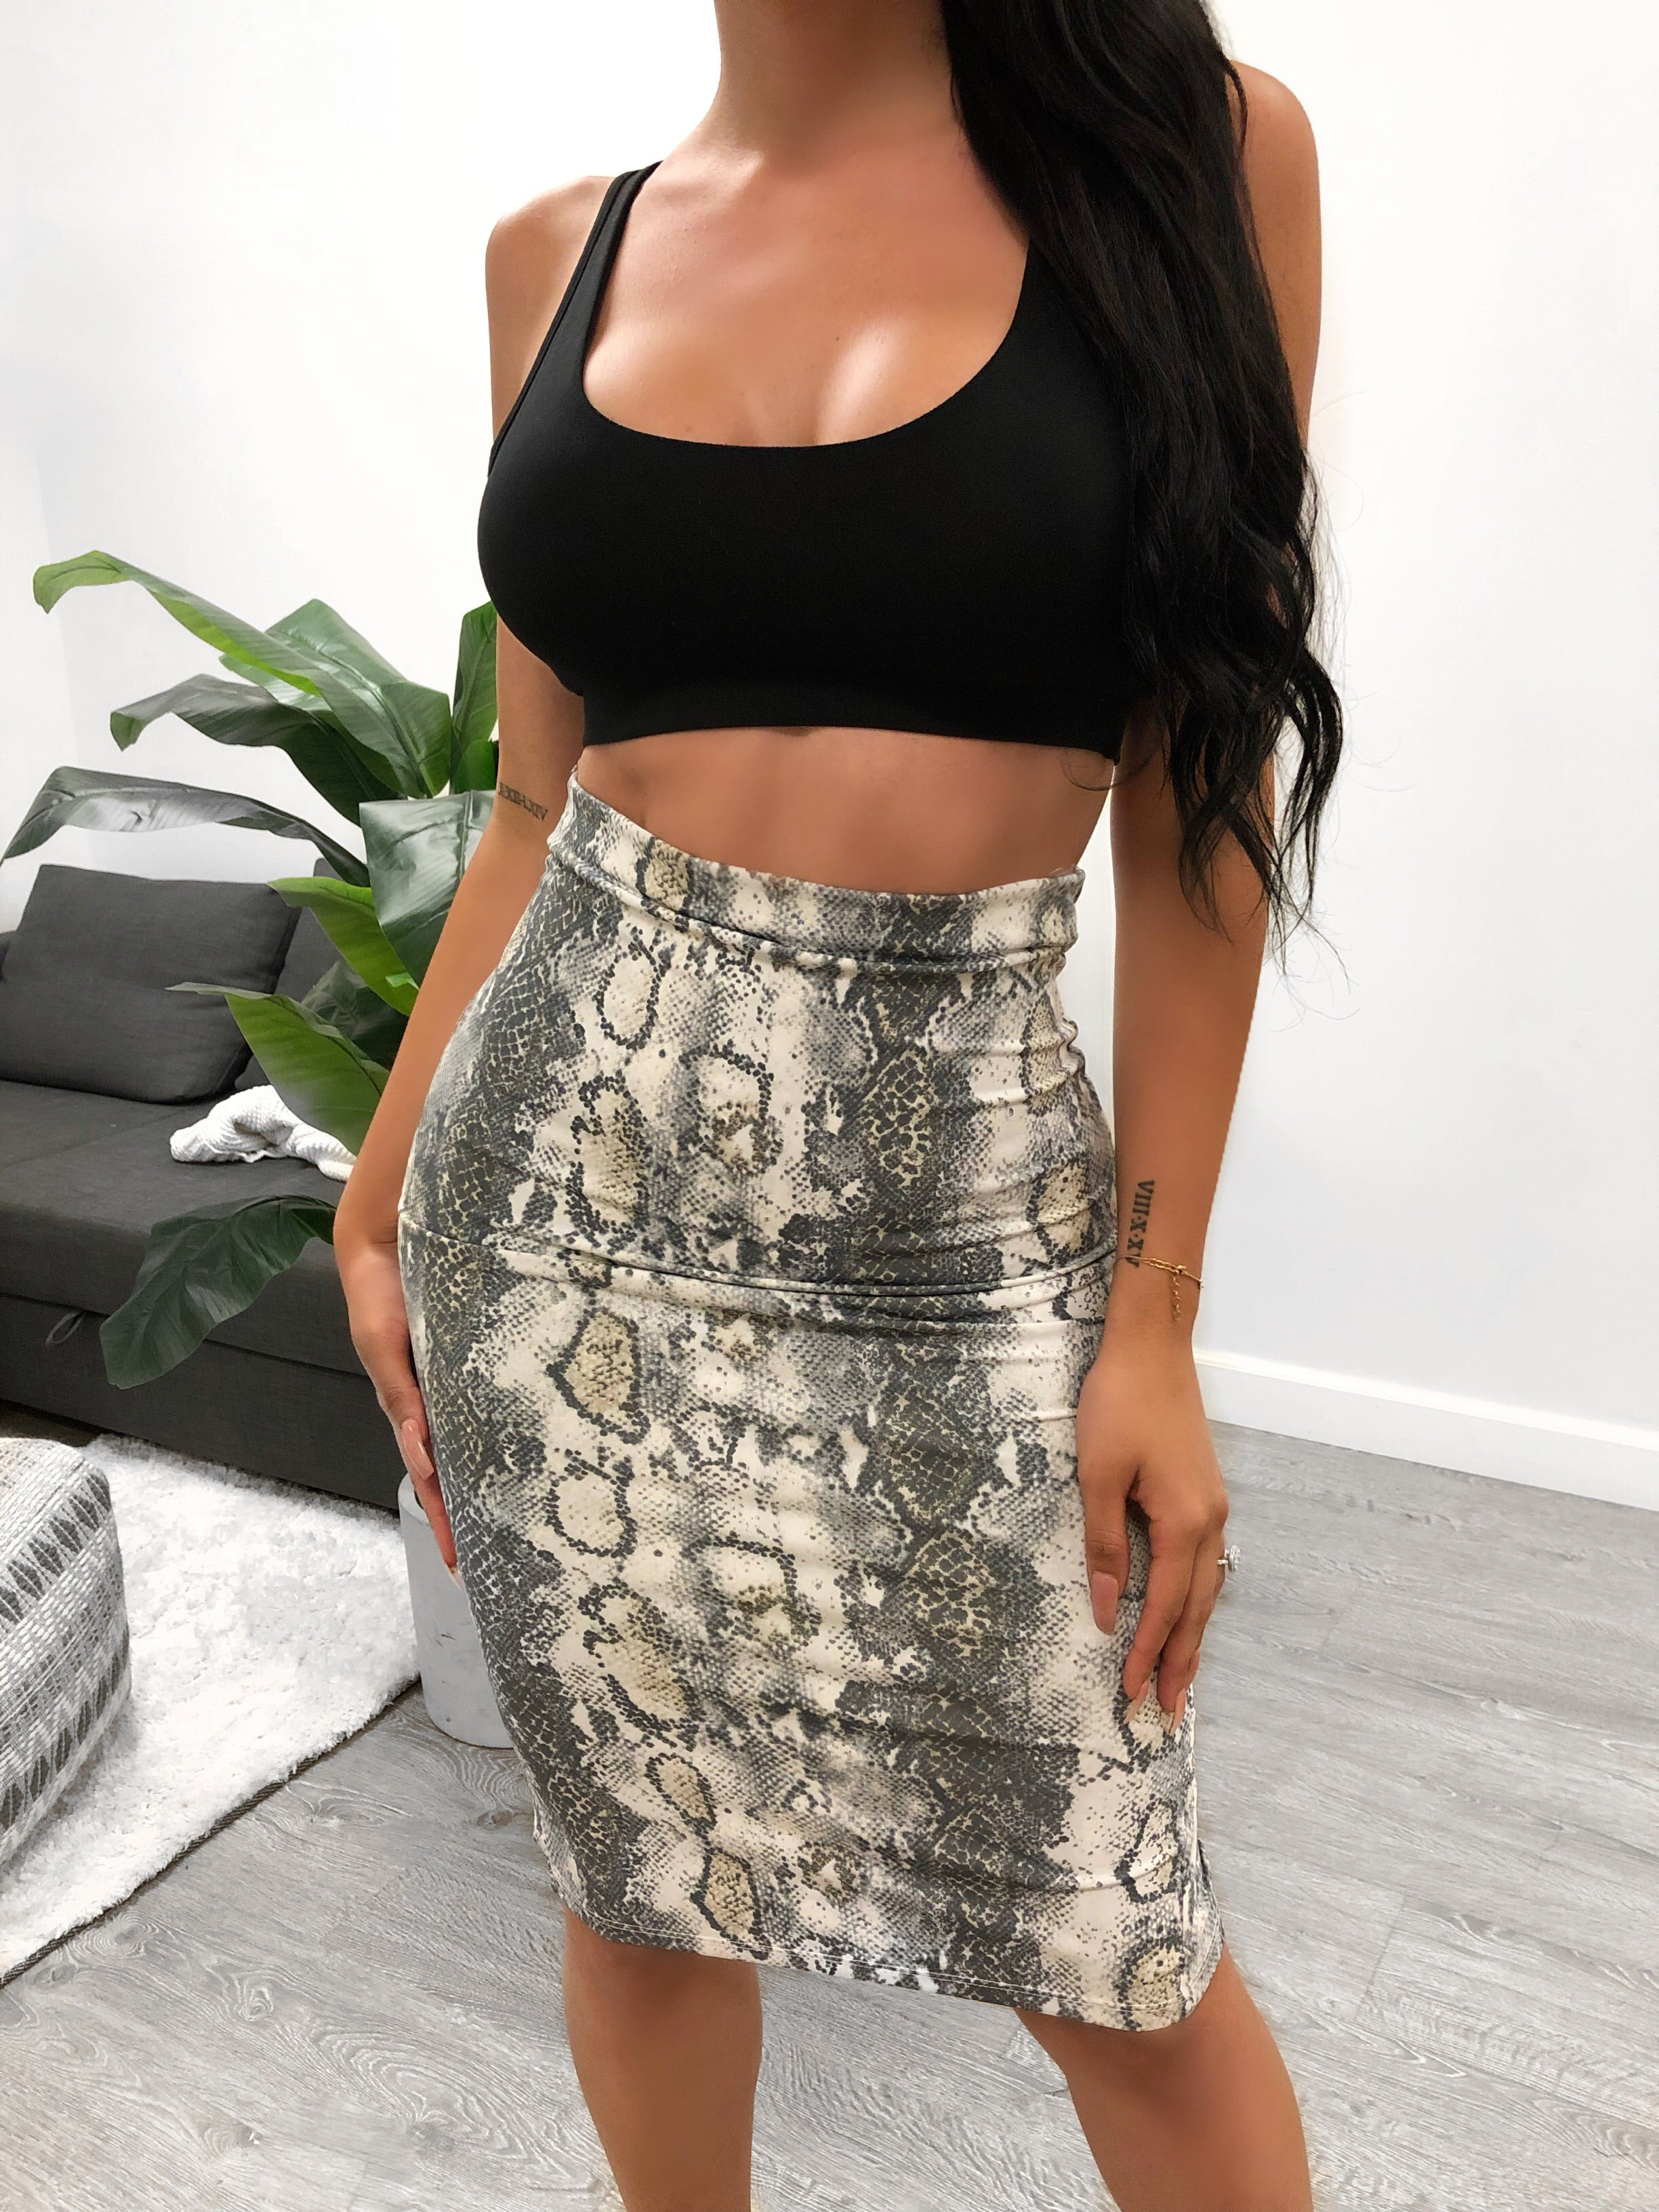 white snake print high waisted skirt, goes to the knees, has small slit in the black